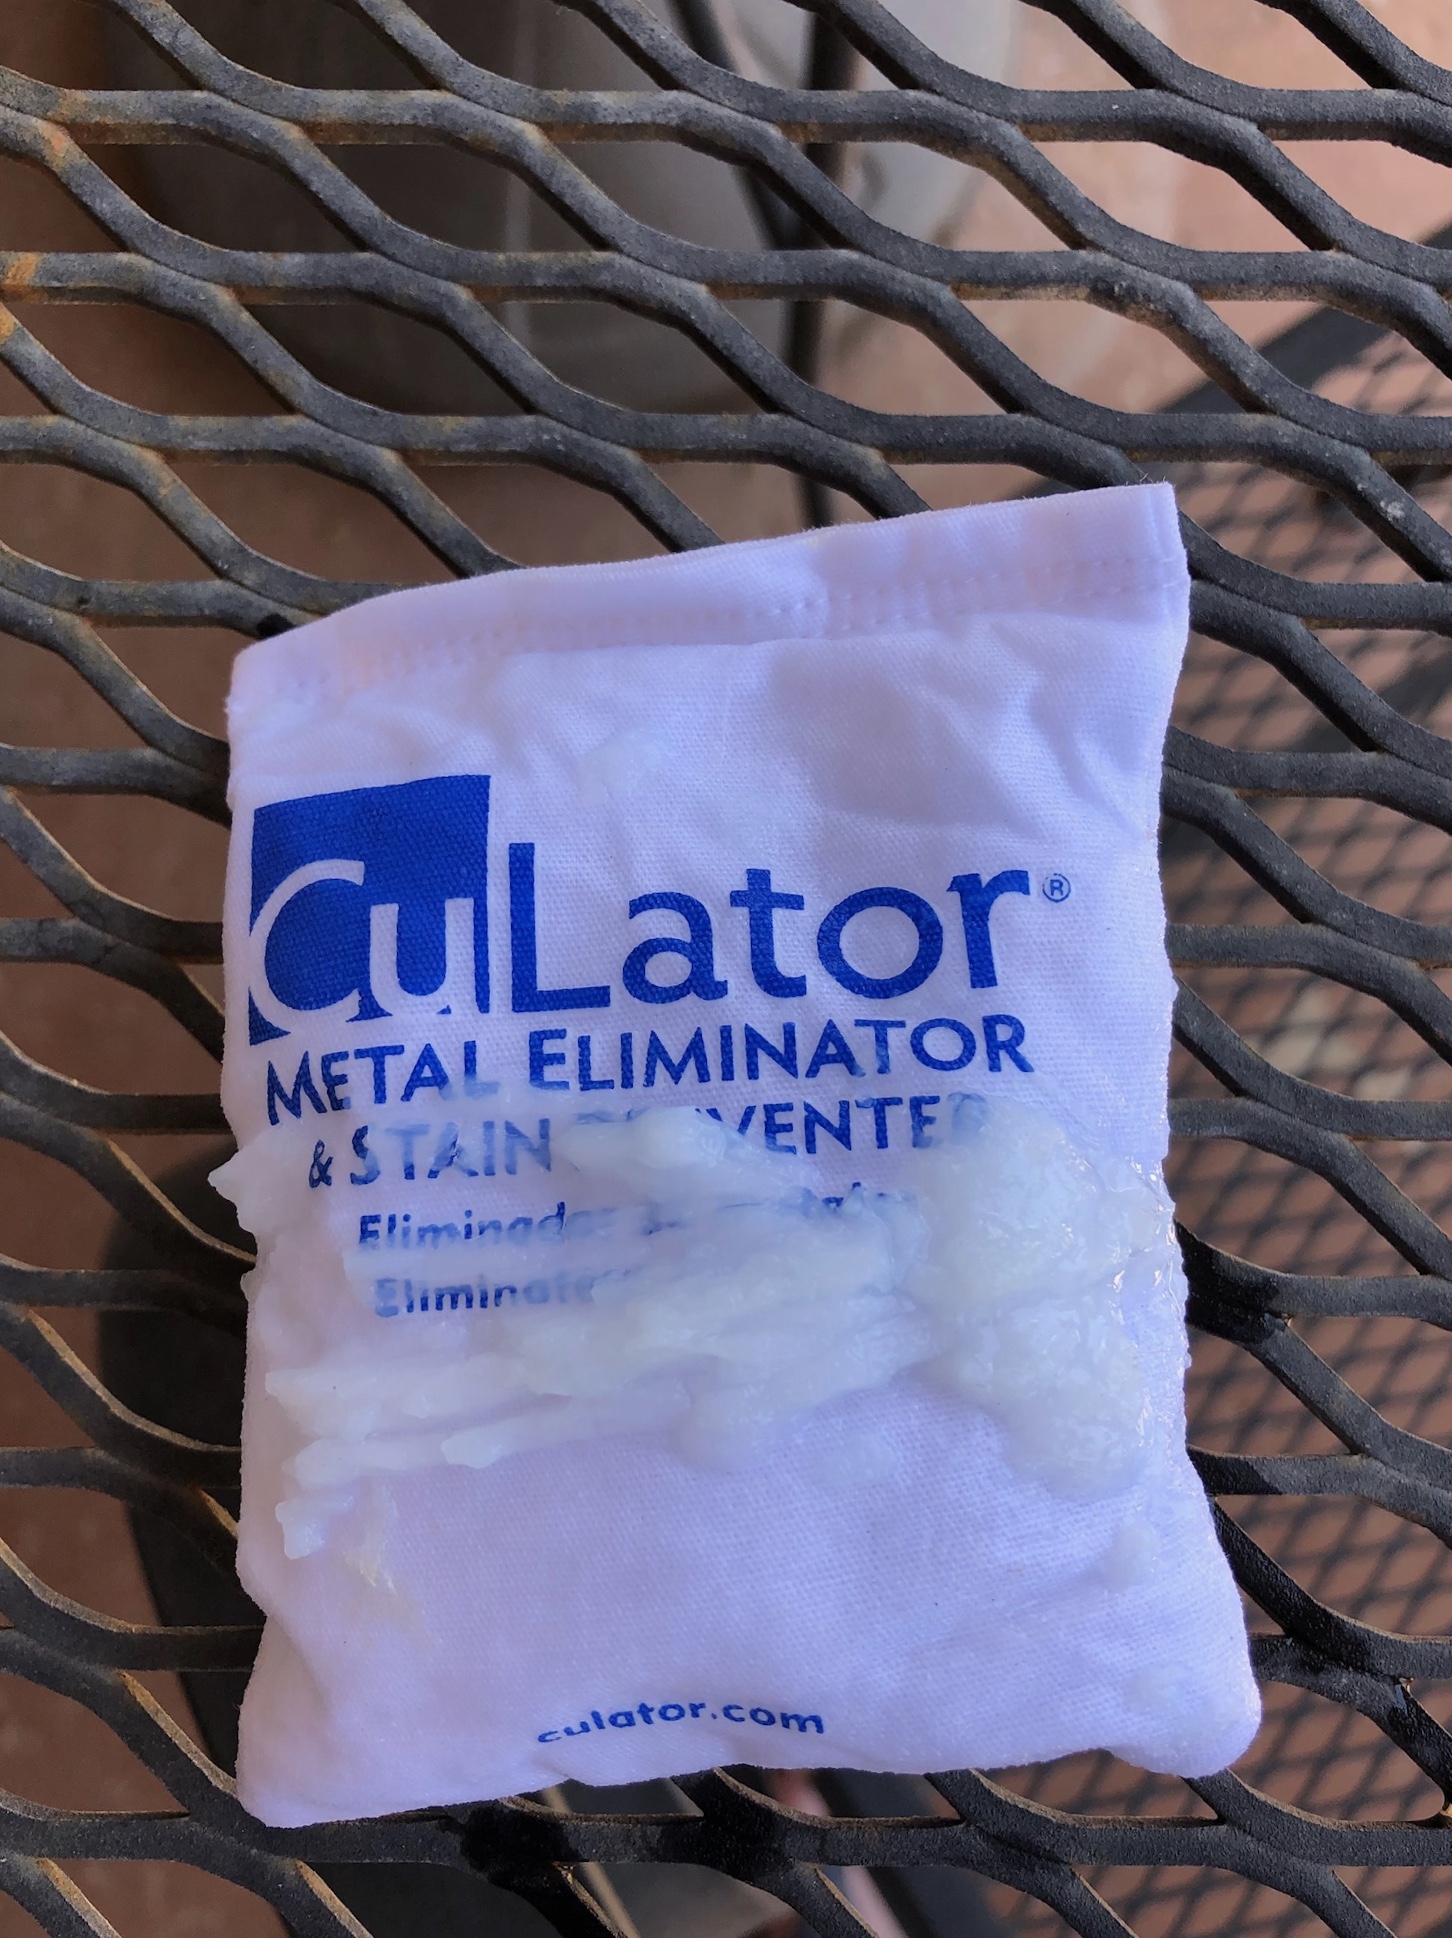 Phosphate remover on the CuLator bag